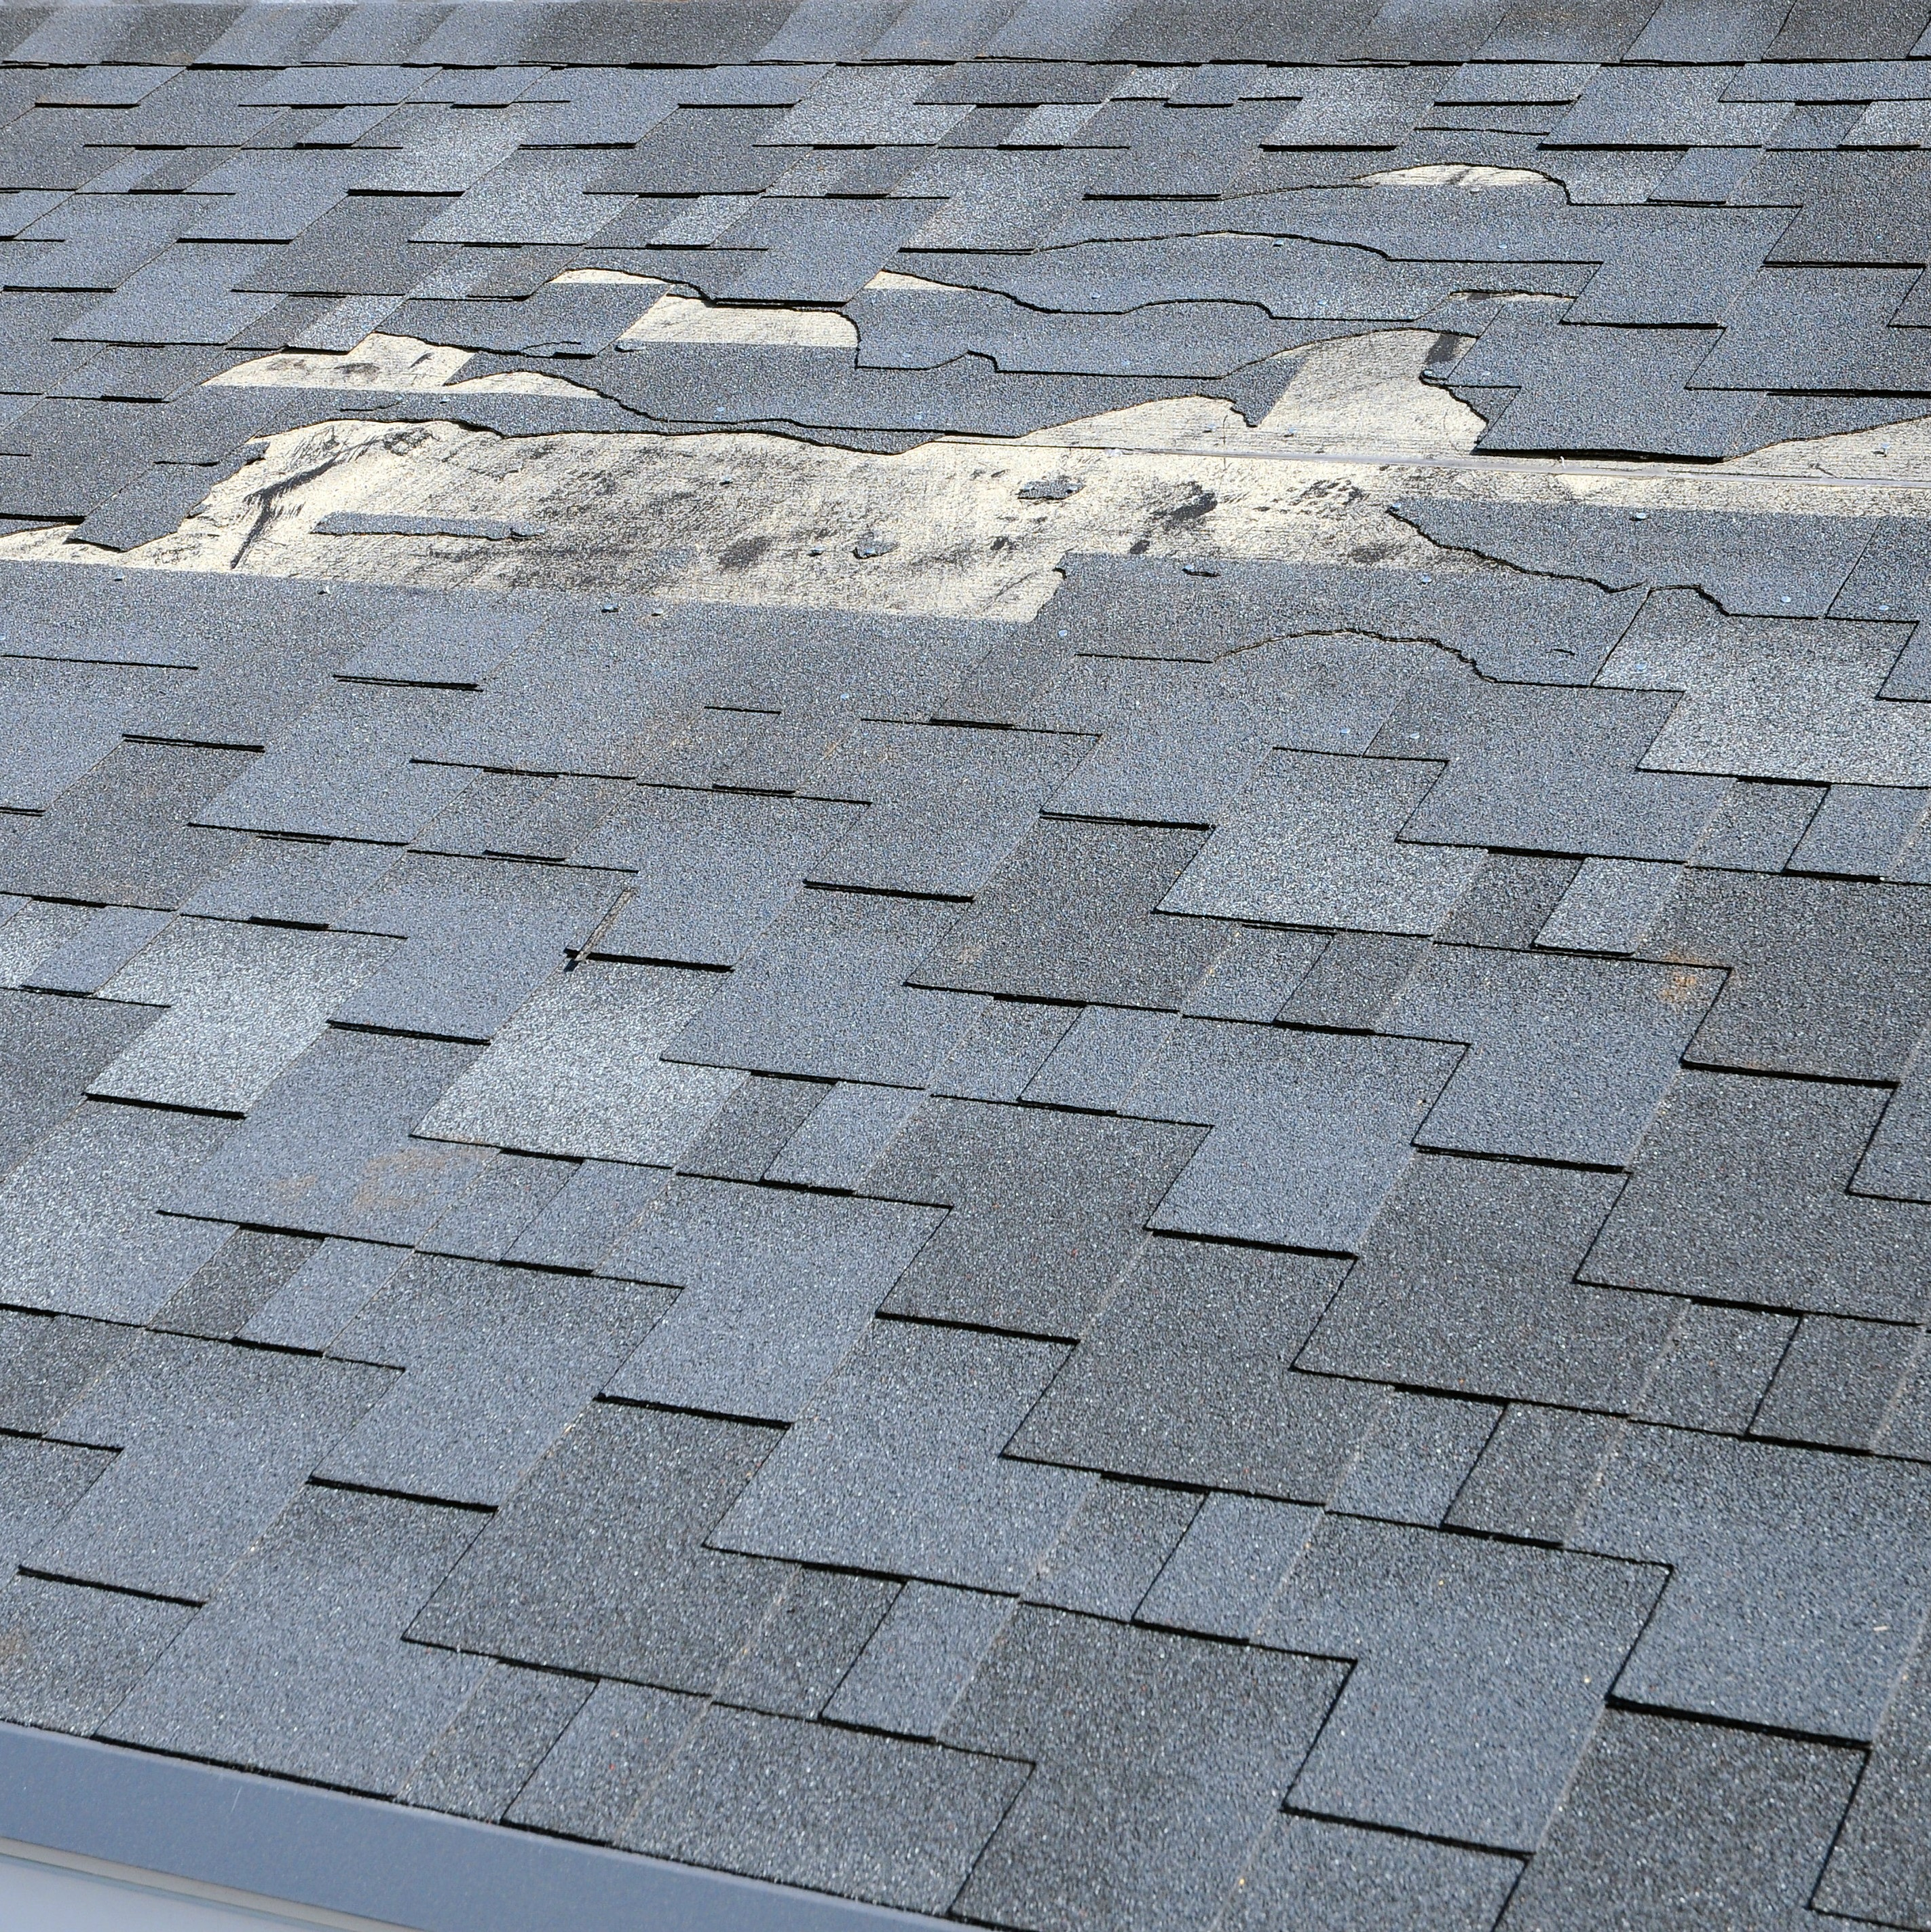 A section of damaged roof that needs to be repaired.